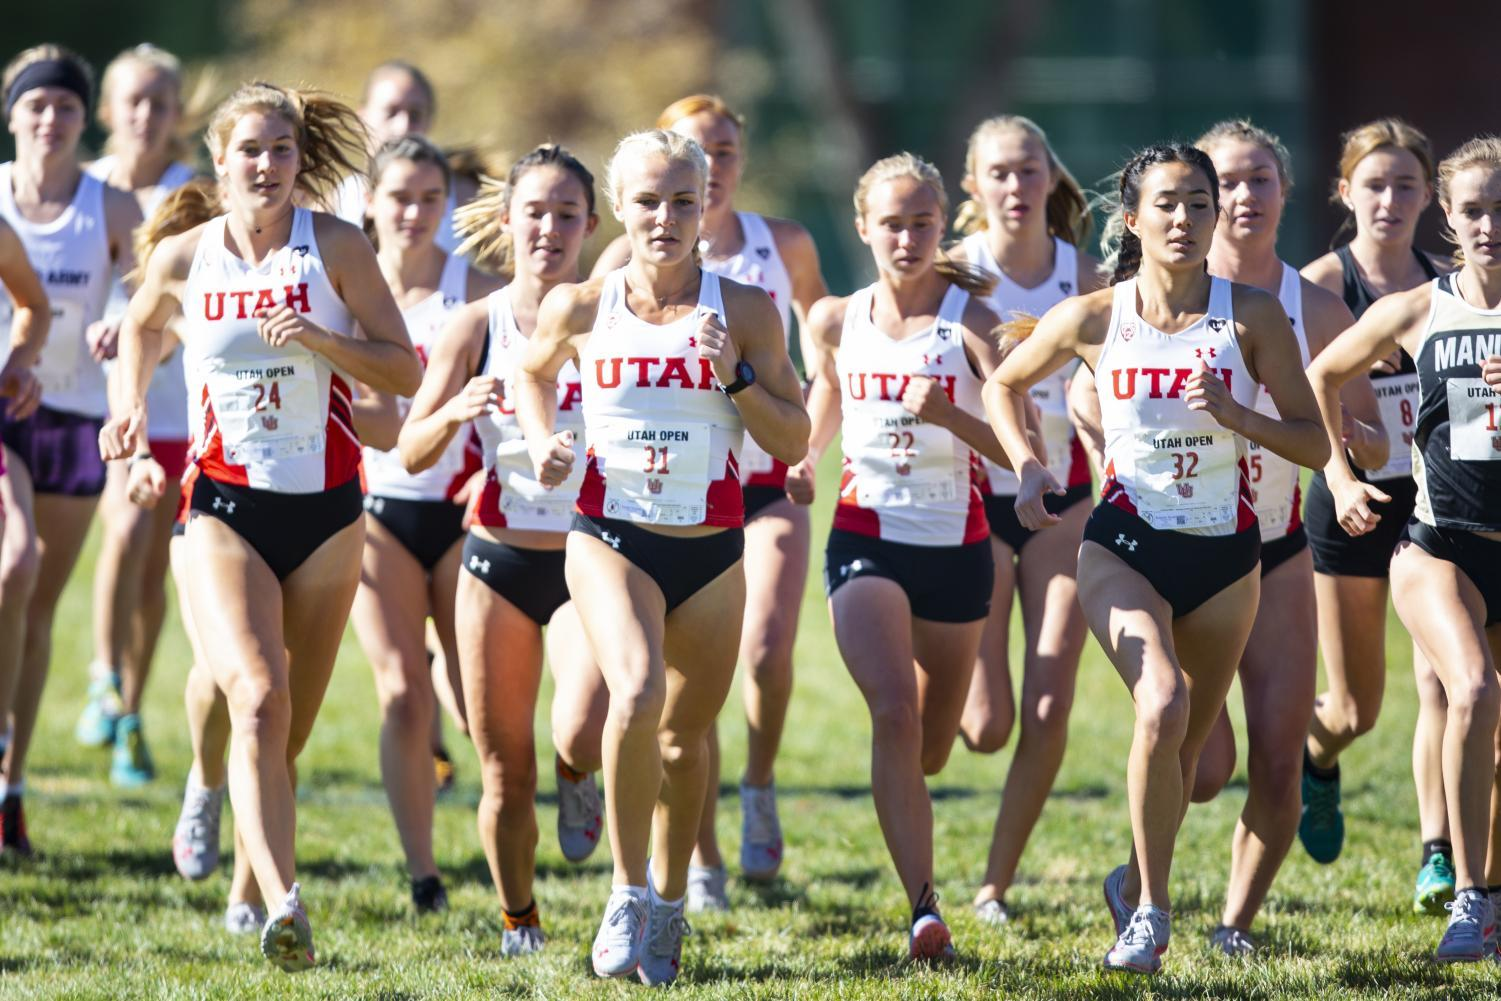 The University of Utah Cross Country Team during the Women's 5K run at the Utah Open in an NCAA Cross Country Meet at Sunnyside Park in Salt Lake City, UT on Friday October 25, 2019.(Photo by Curtis Lin   Daily Utah Chronicle)